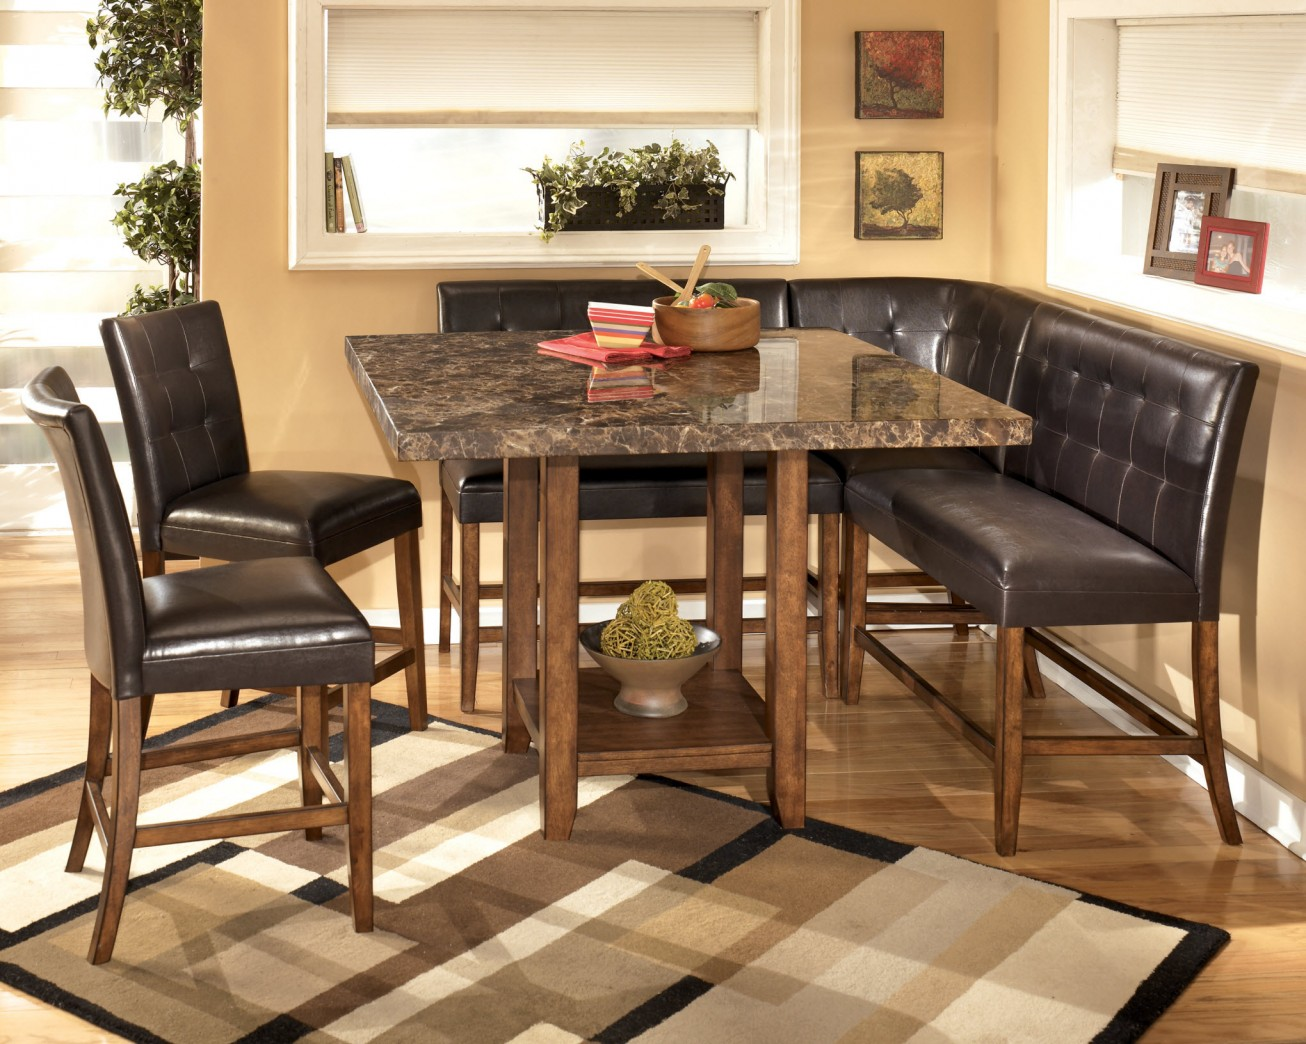 fascinating granite dining table set with rack underneath and sectional tufted leather chairs plus modern rug area on a wooden laminate floor